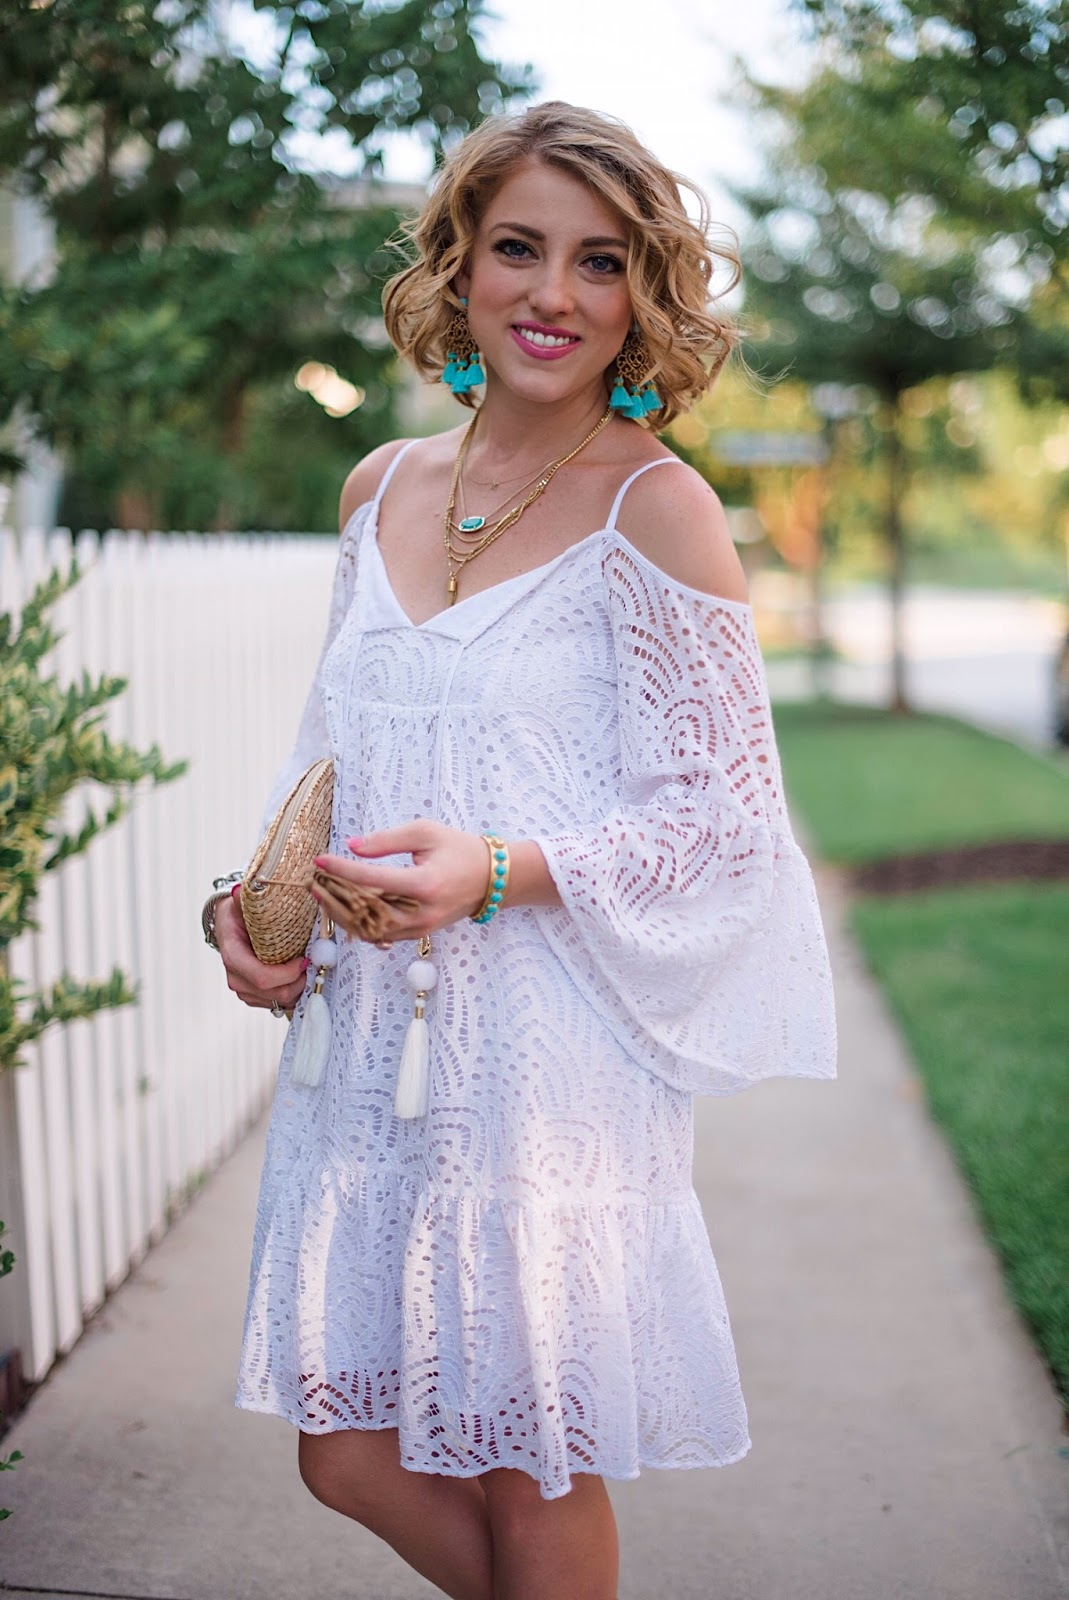 Lilly Pulitzer Alanna Dress - Something Delightful Blog